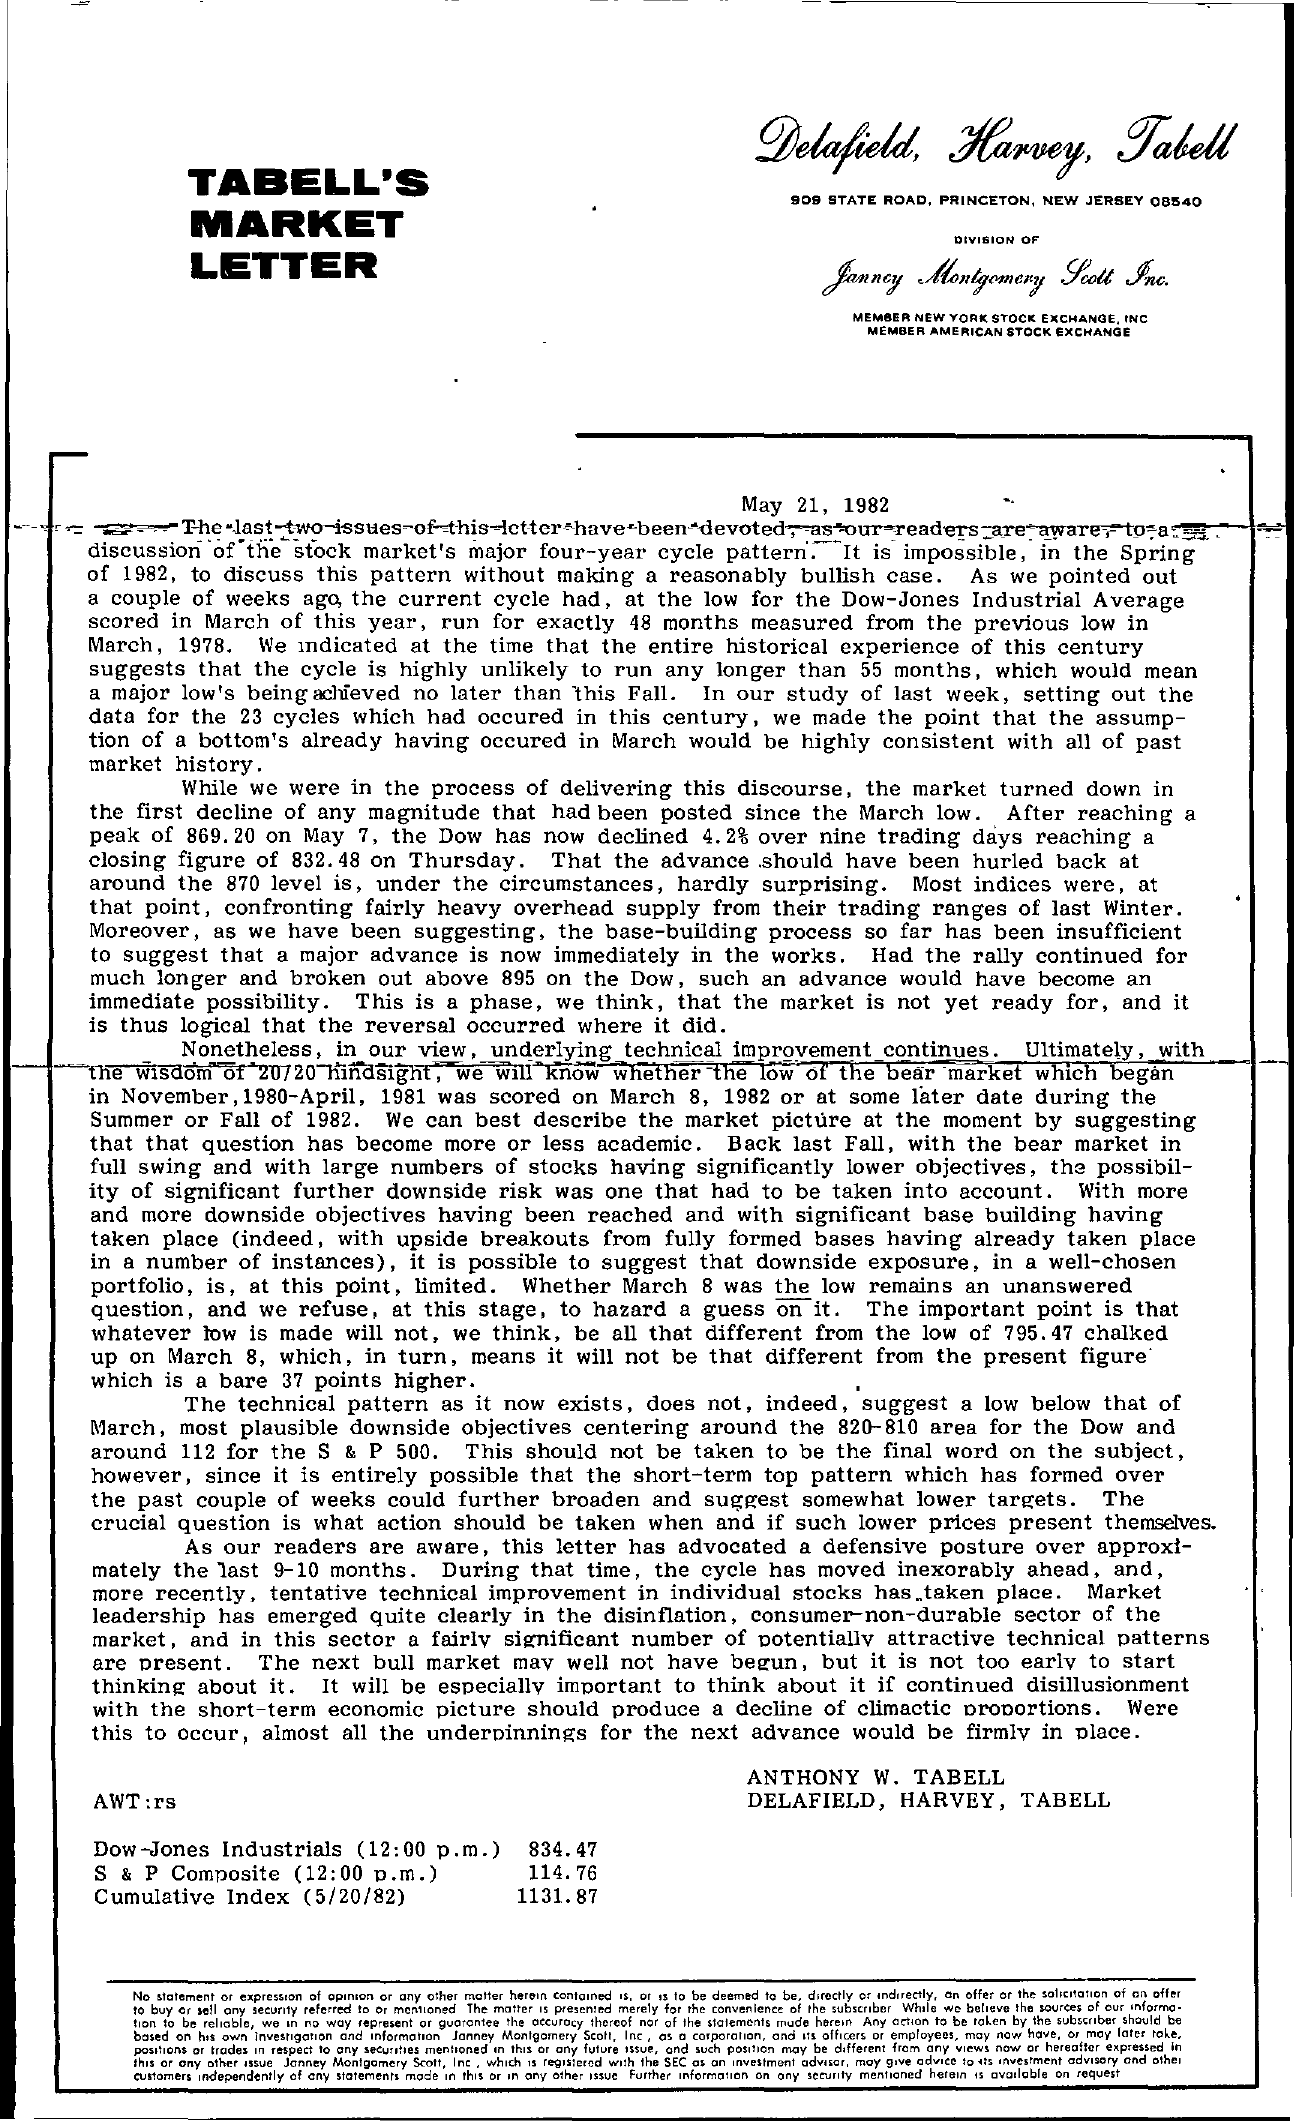 Tabell's Market Letter - May 21, 1982